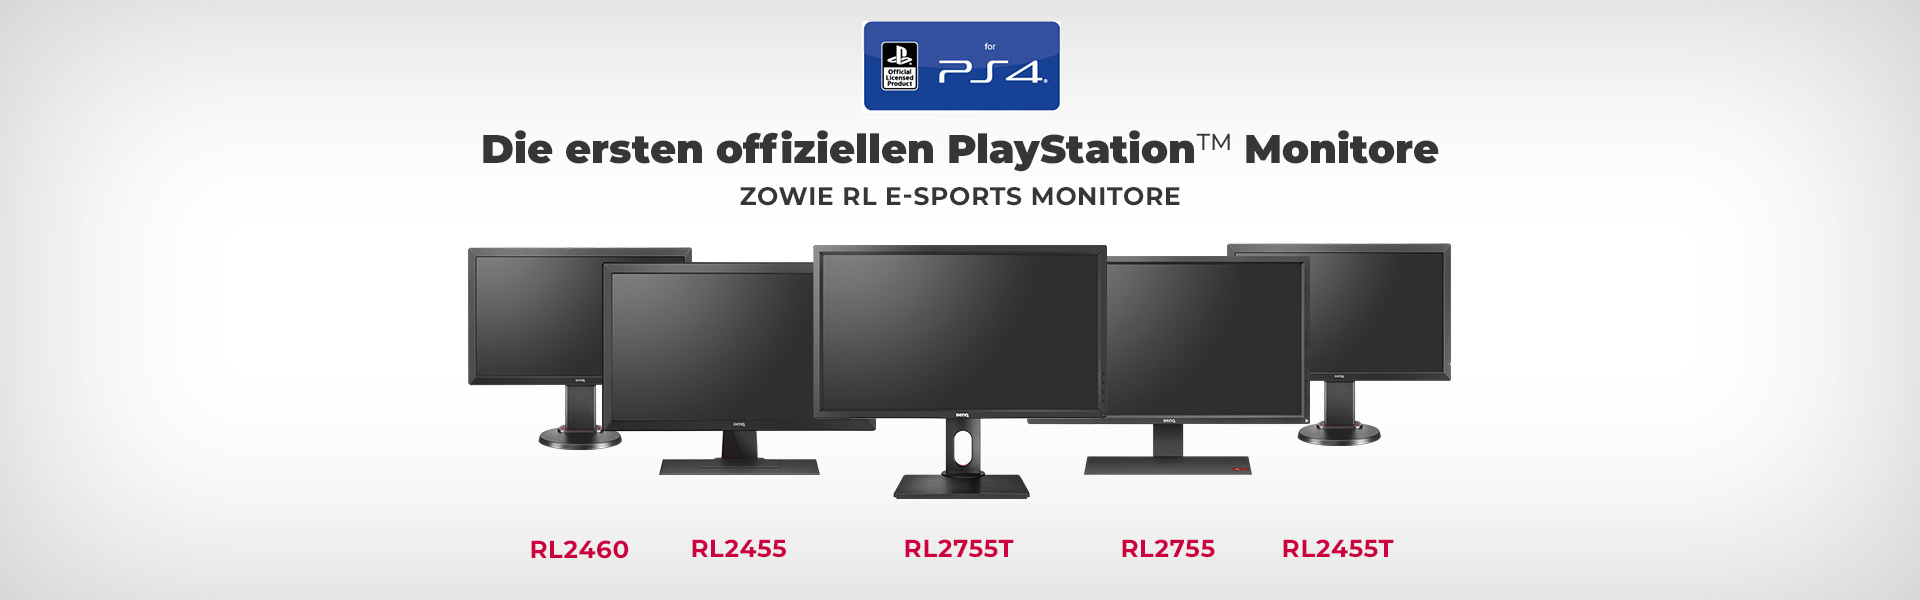 zowie rl series console esports monitor officially licensed by playstation ps4 sony